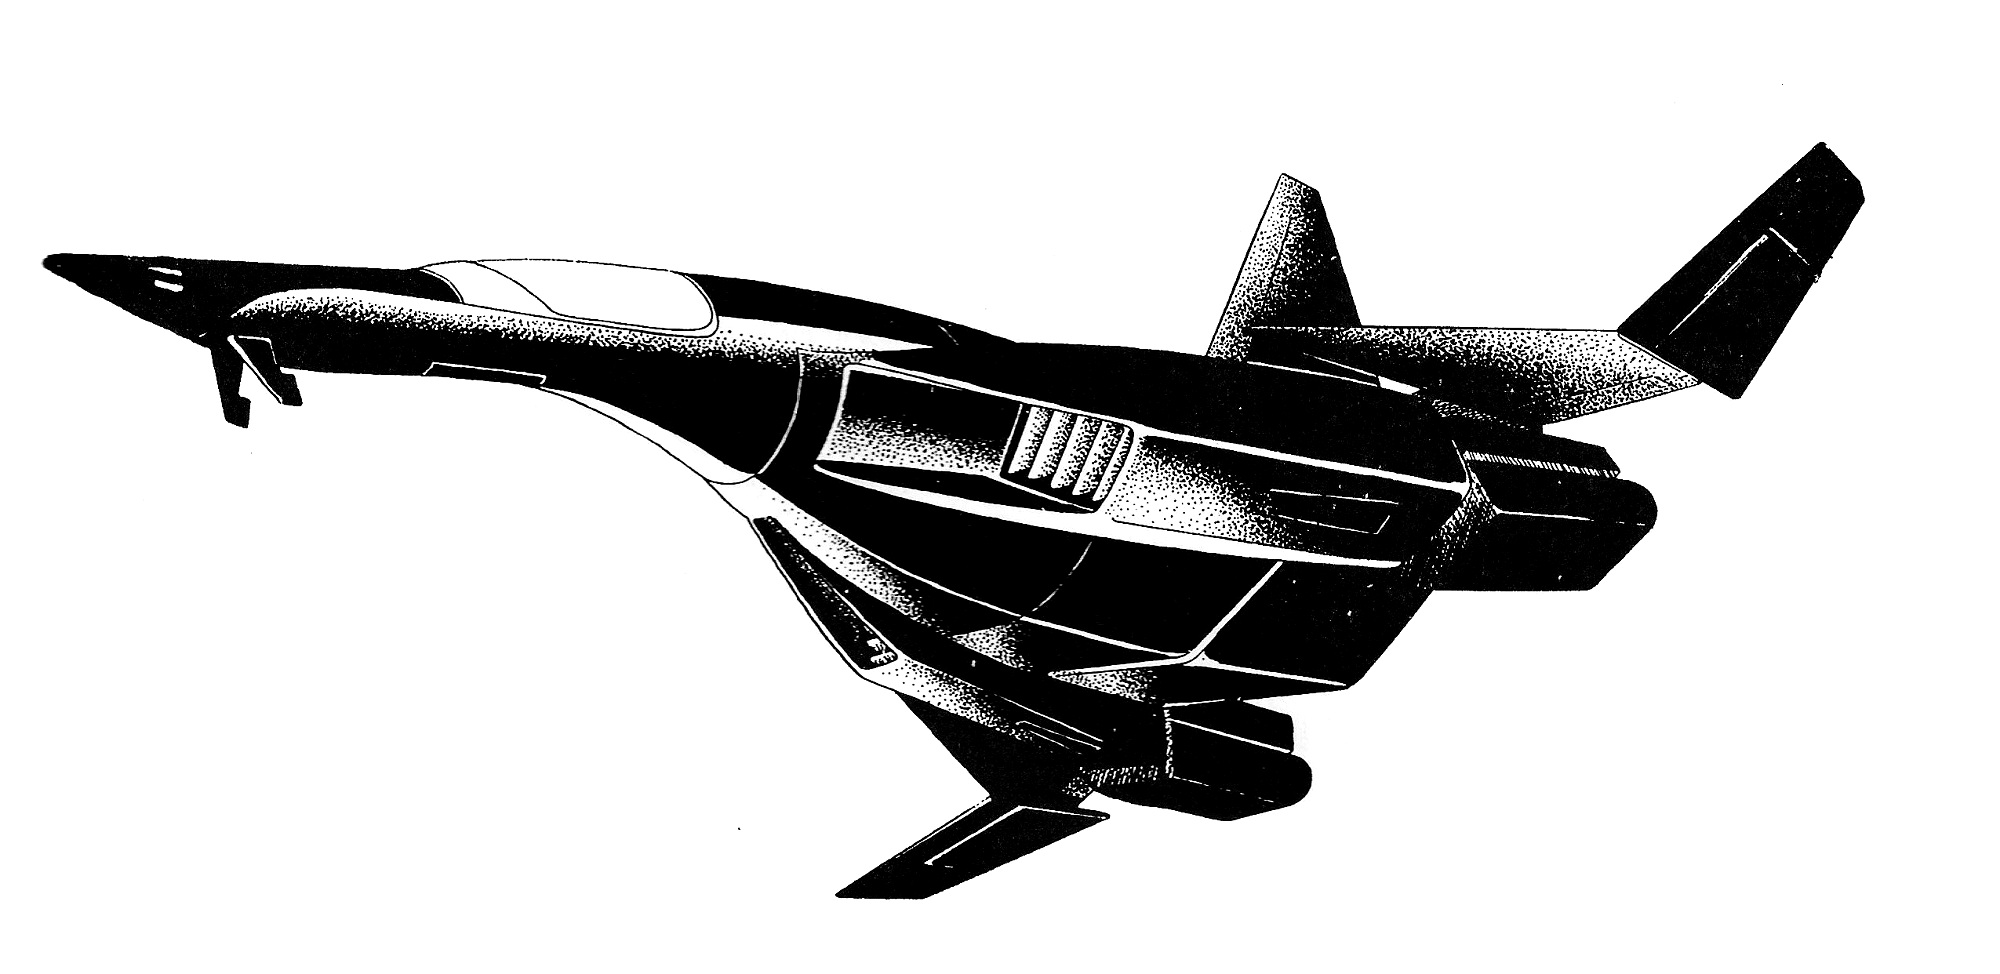 Northrop F-110 Falcon II Fighter/Interceptor Aircraft ...